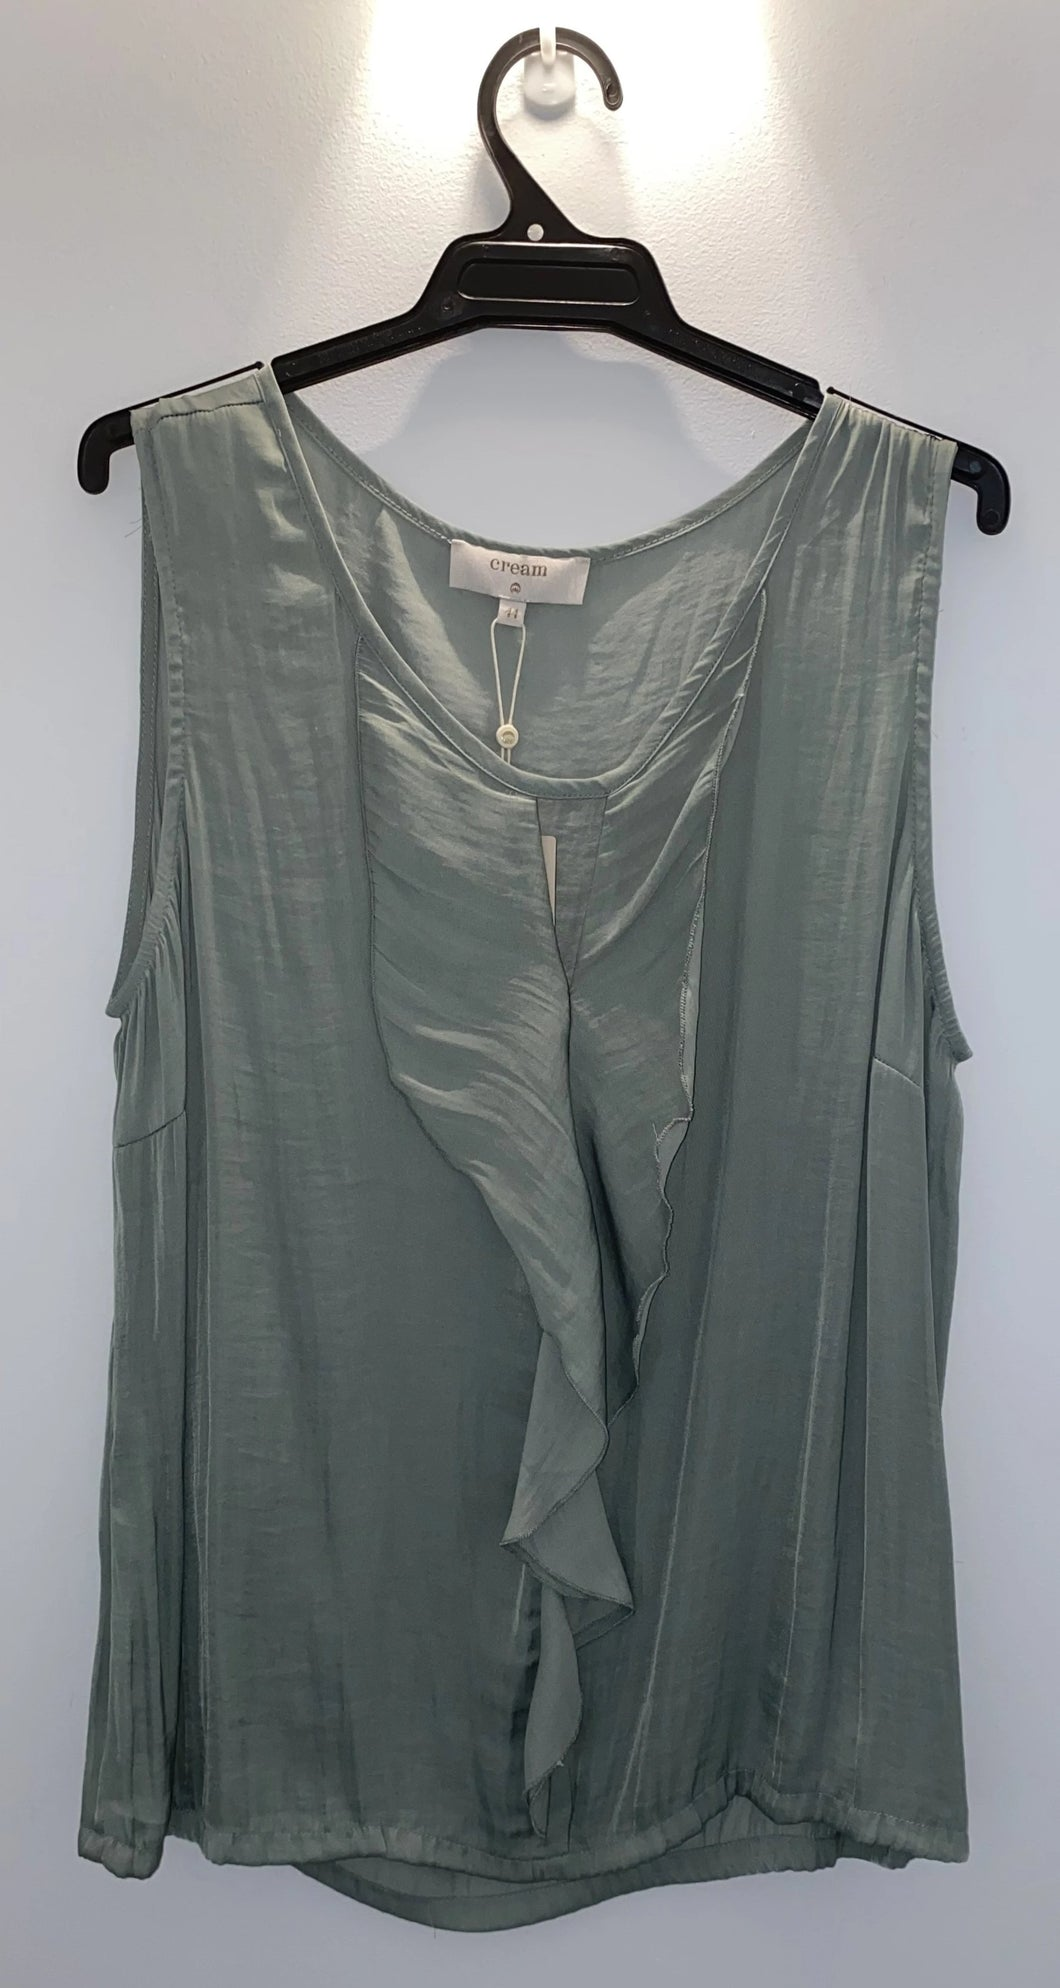 SALE CR 118 Fern Sleeveless Waterfall Top